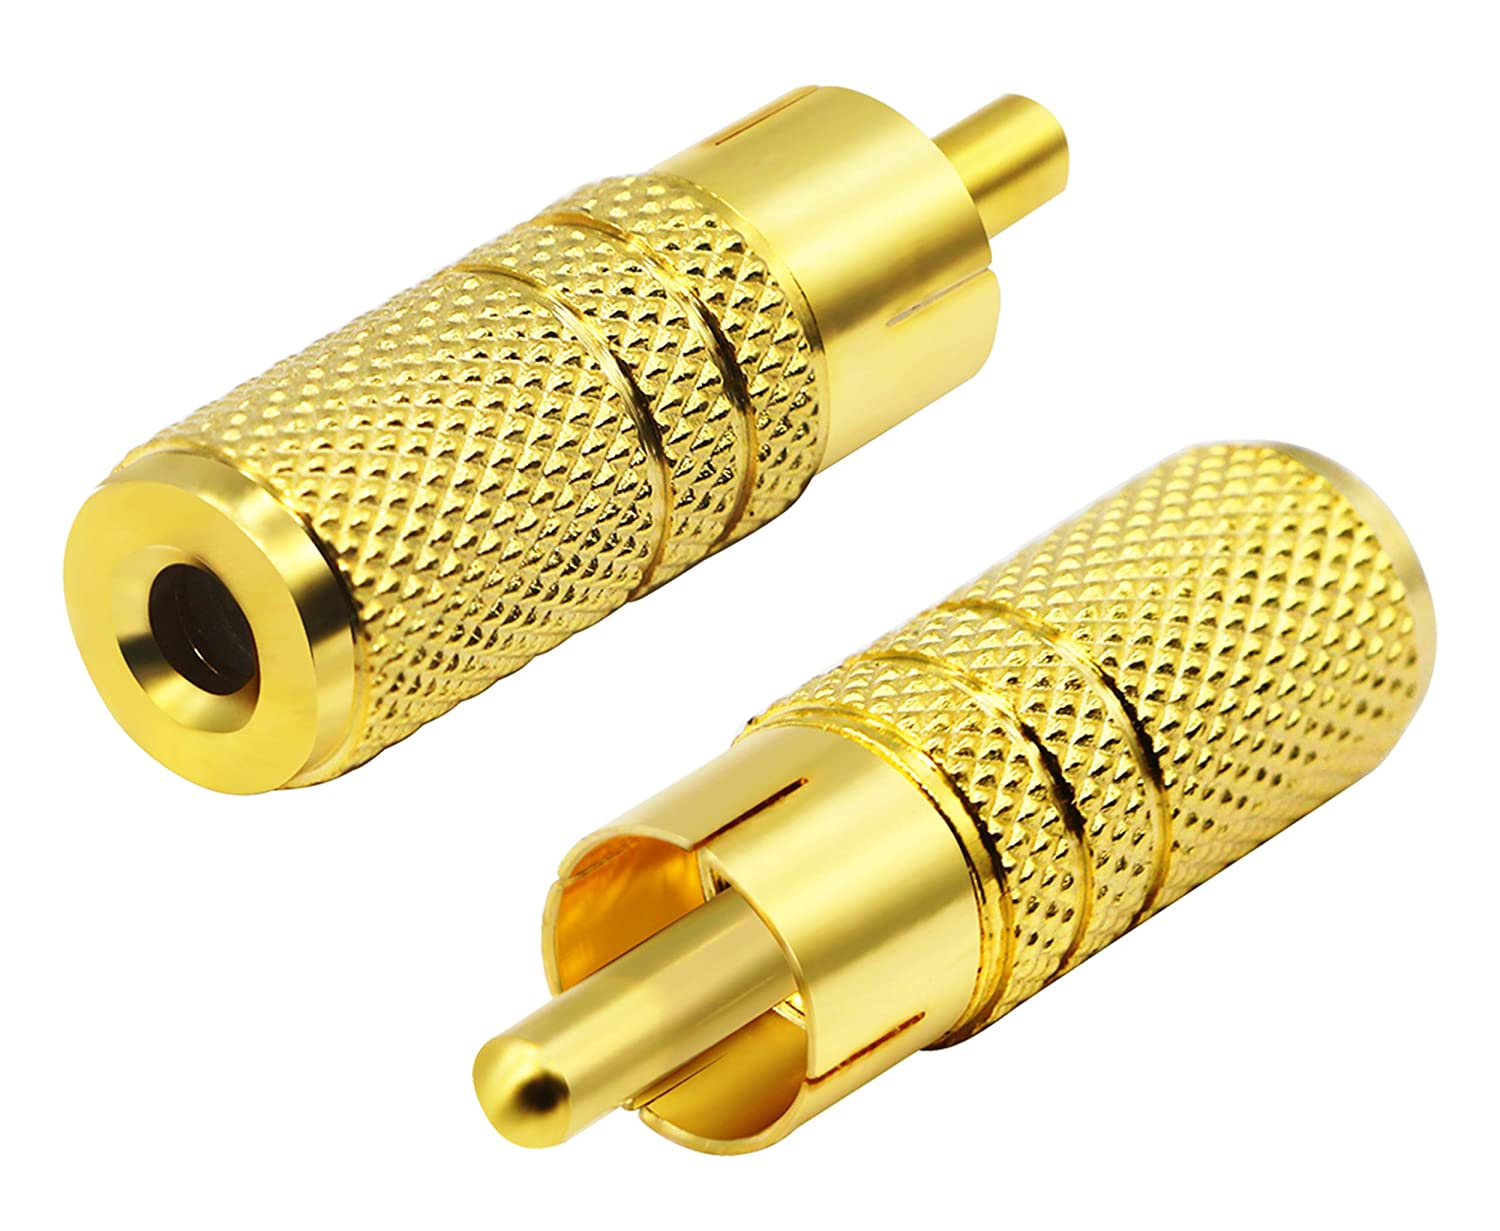 Female to RCA Male Audio Plug Adaptor Connector for 3.5MM Headphone Adapter Cable(Gold //2 Pack F//M) CGTime Gold Plated RCA to 3.5MM Audio Adapter Metal Jack 3.5mm 1//8 Inch